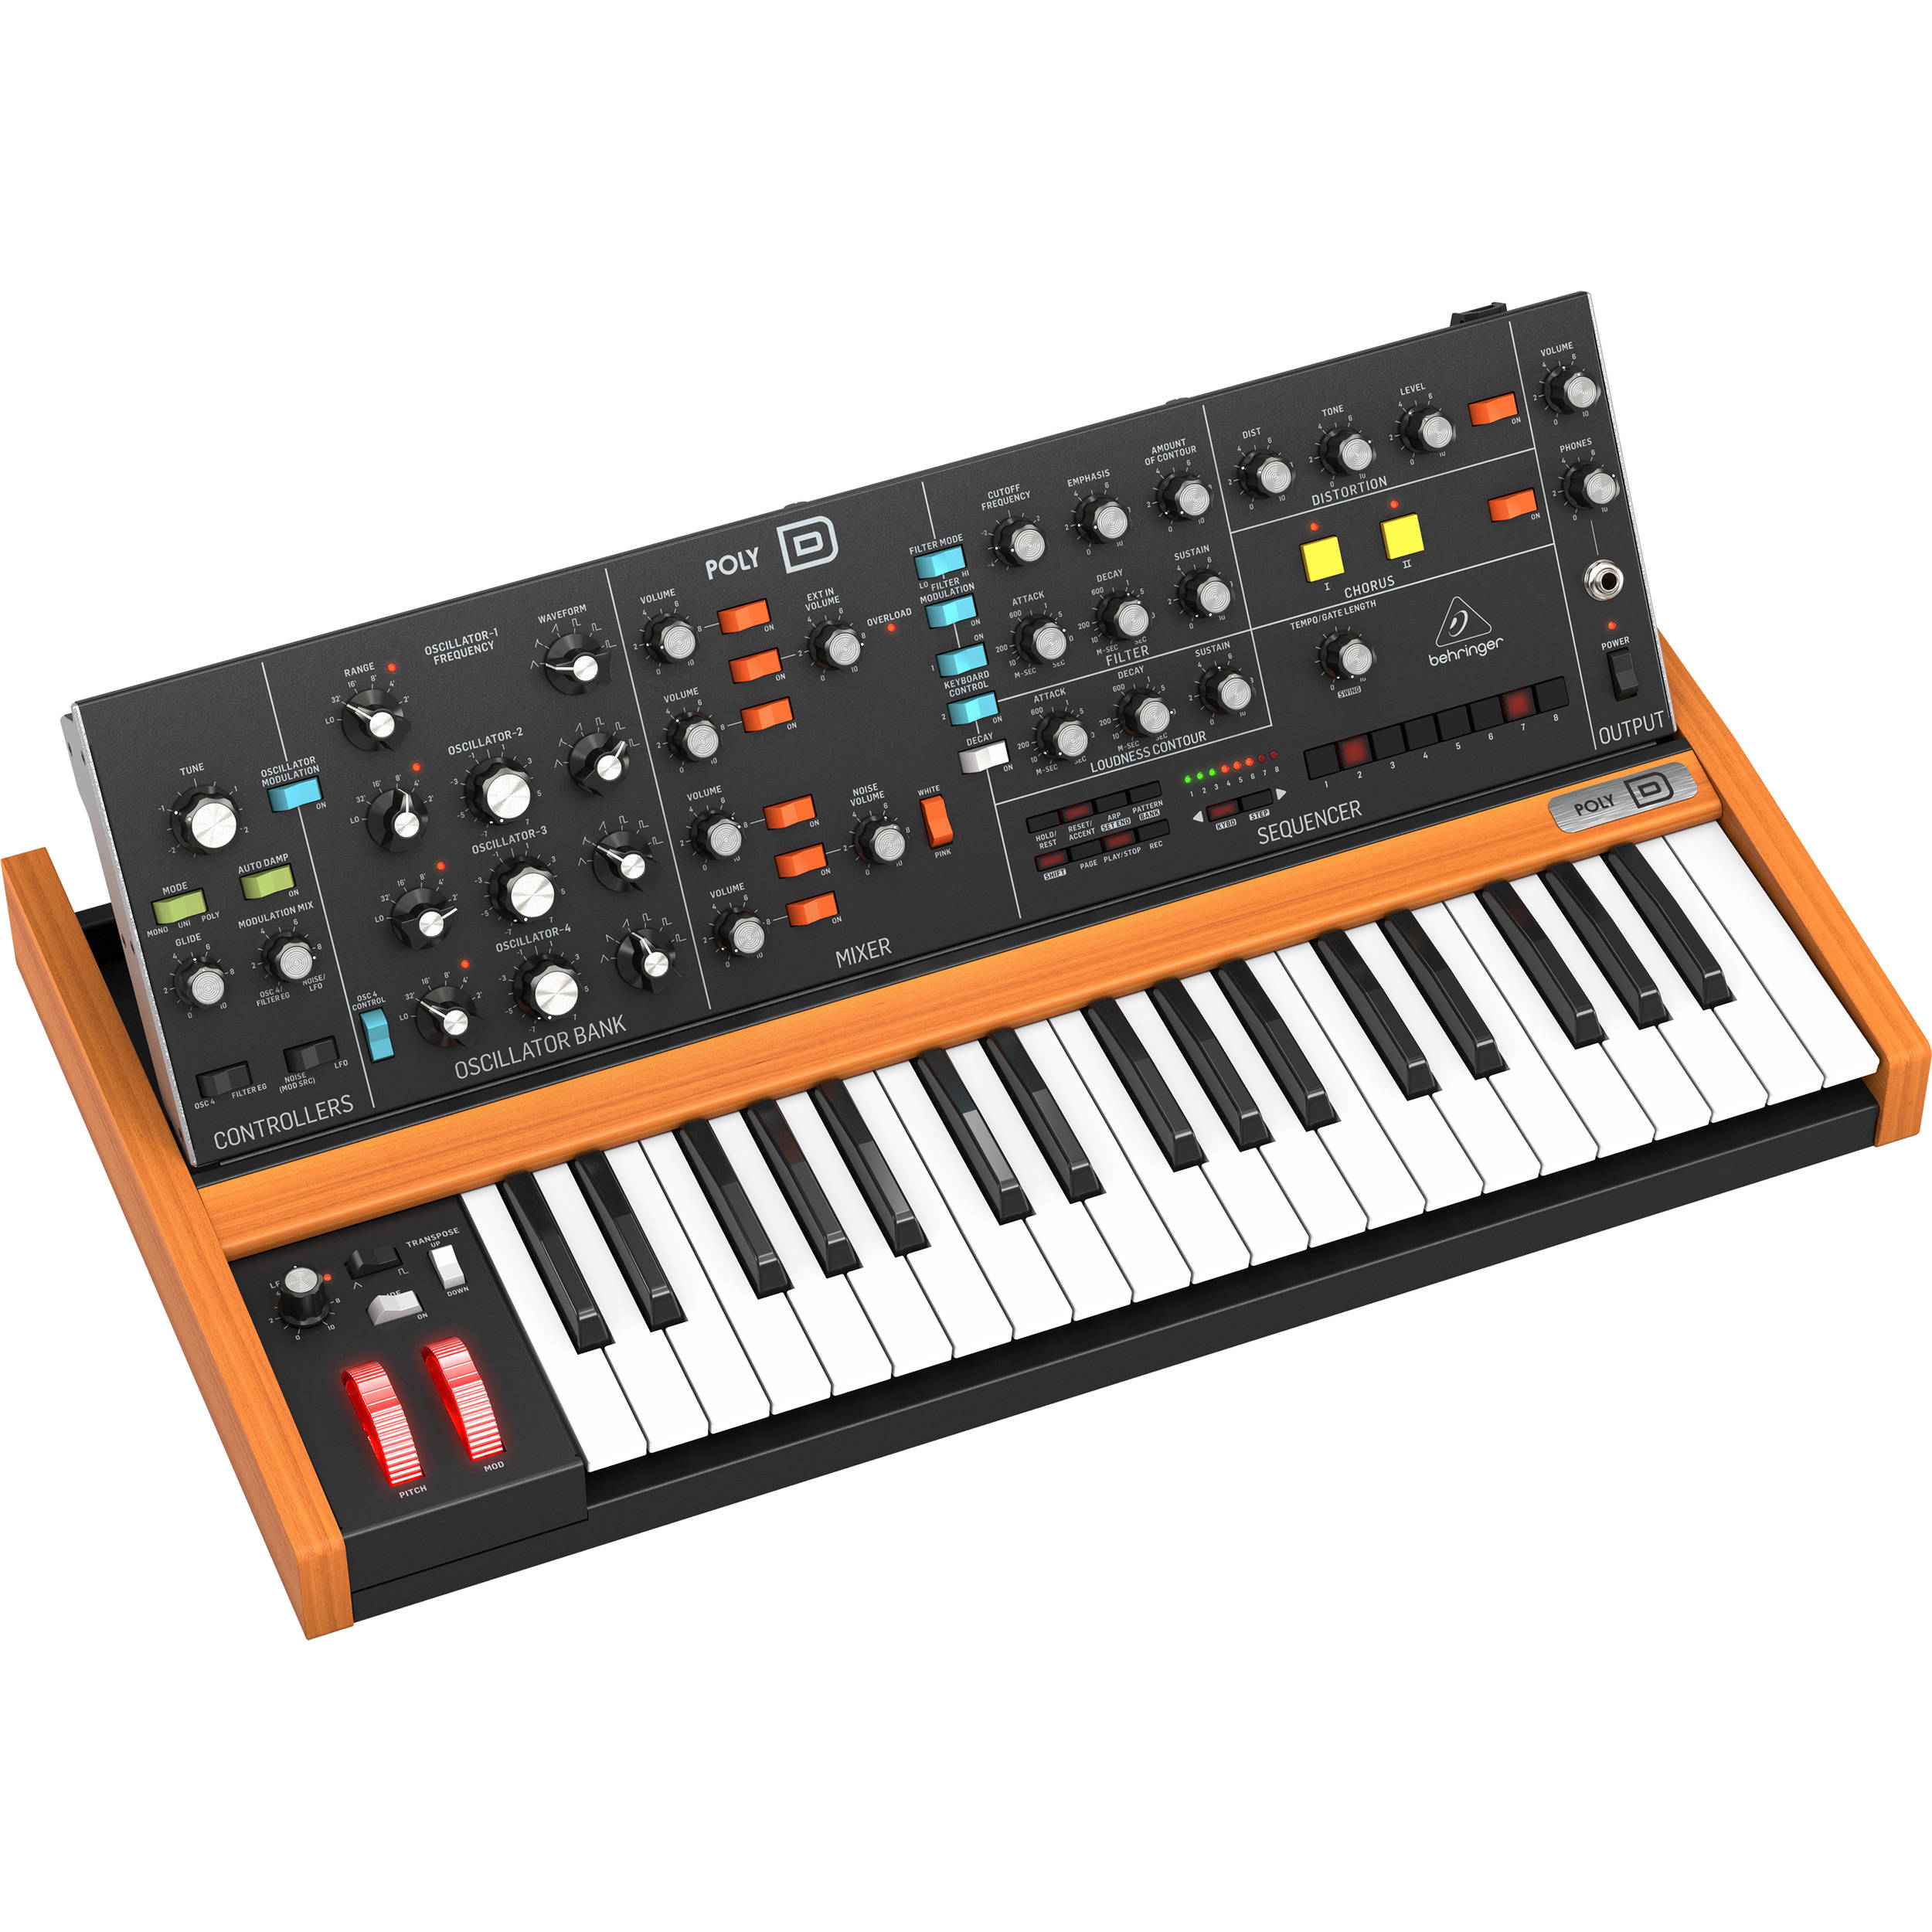 Behringer Poly D 4 Voice Polyphonic Analog Synthesizer Poly D Poly d from behringer is based on their own model d, which in turn is based on moog's minimoog model d, but expanded in quite a few ways. behringer poly d 4 voice polyphonic analog synthesizer with ladder style filter